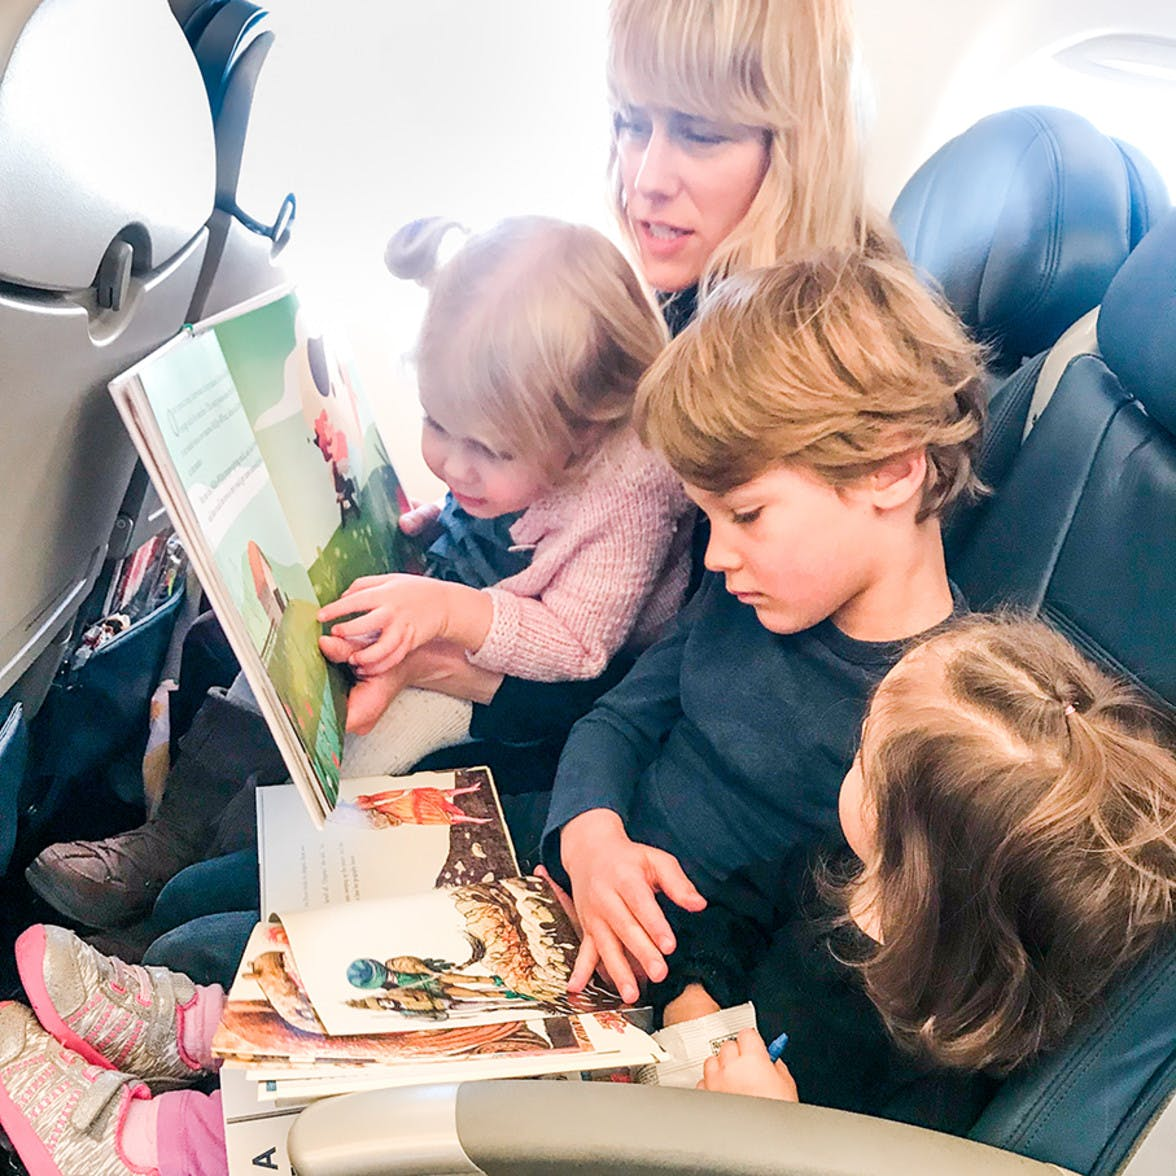 Three children and their mother sitting together on an airplane all reading books